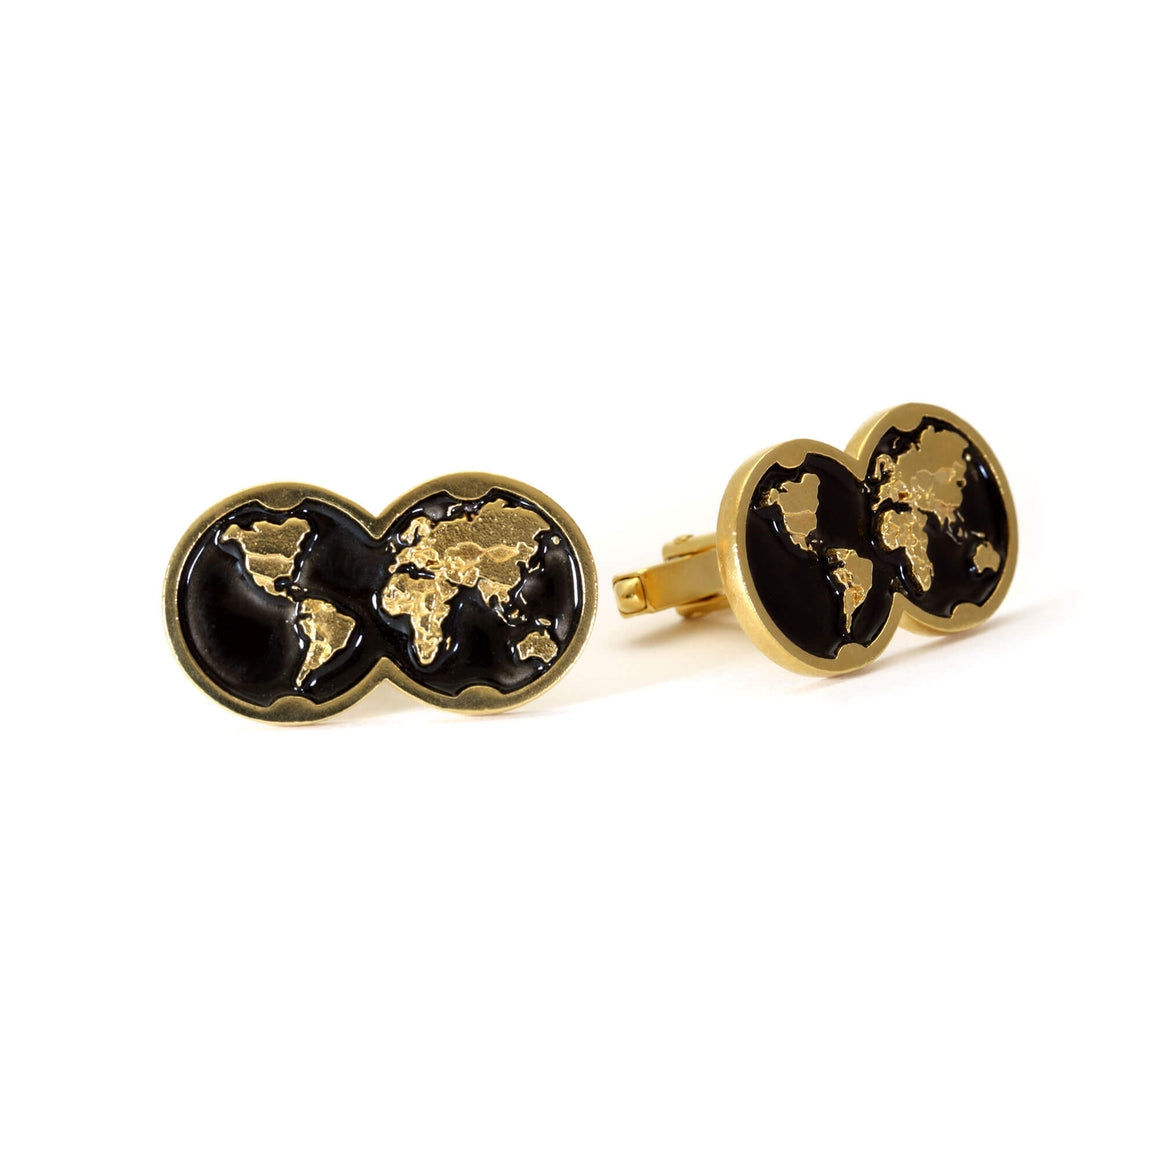 Atlas Black Enamel and Yellow Gold Cufflink